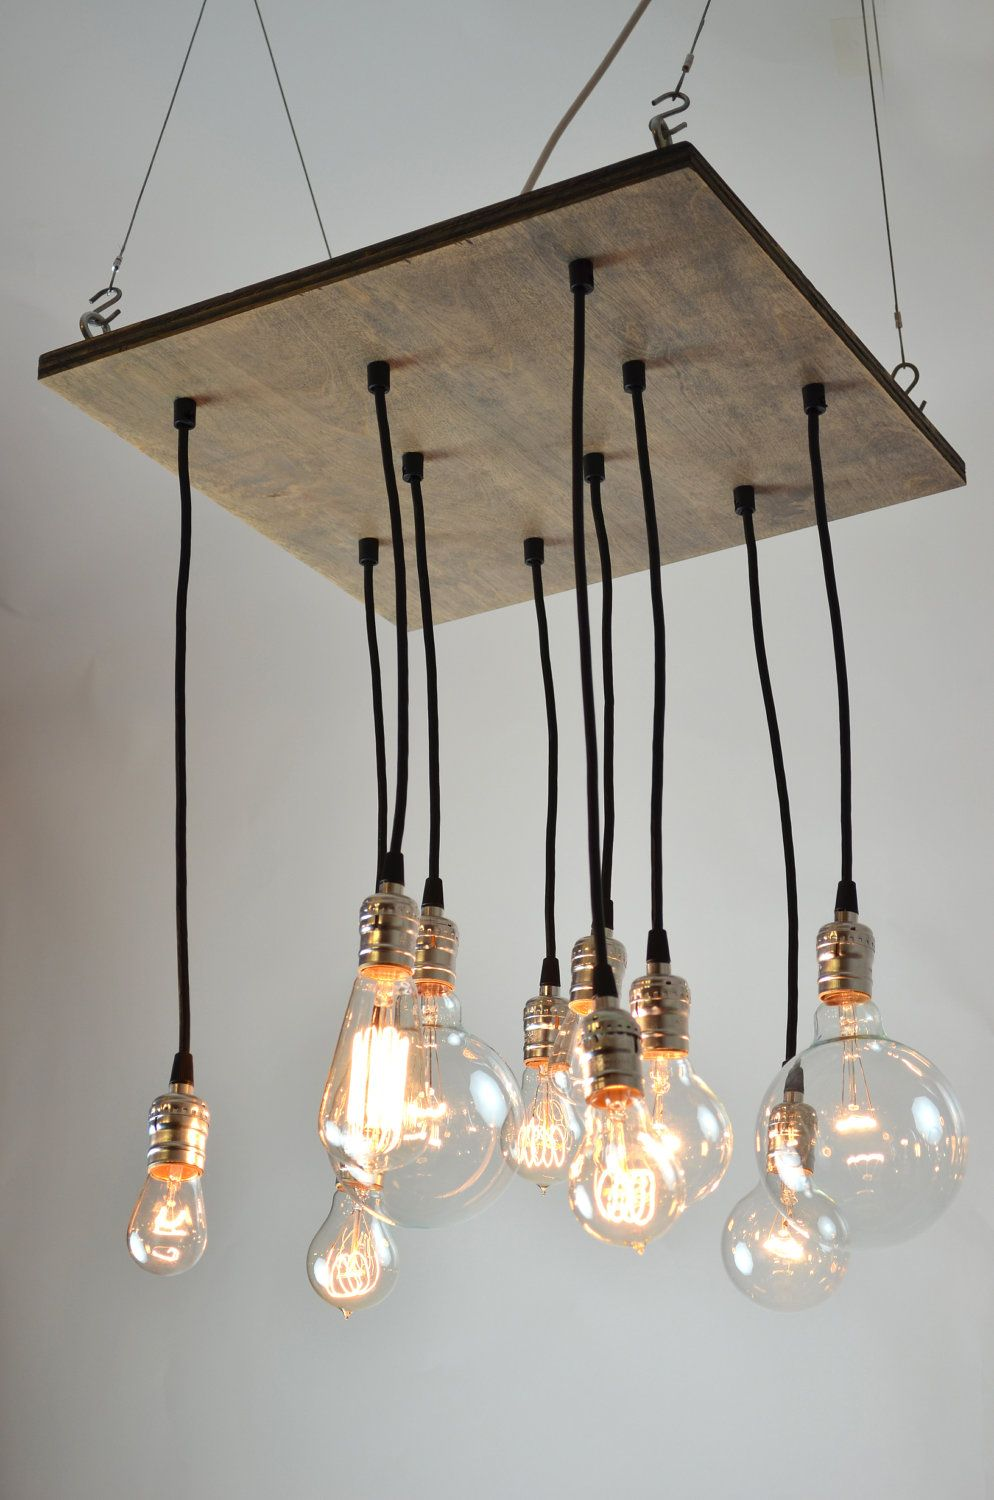 Square industrial style chandelier light fixture made from reclaimed square industrial style chandelier light fixture made from reclaimed wood edison bulbs 49500 aloadofball Images